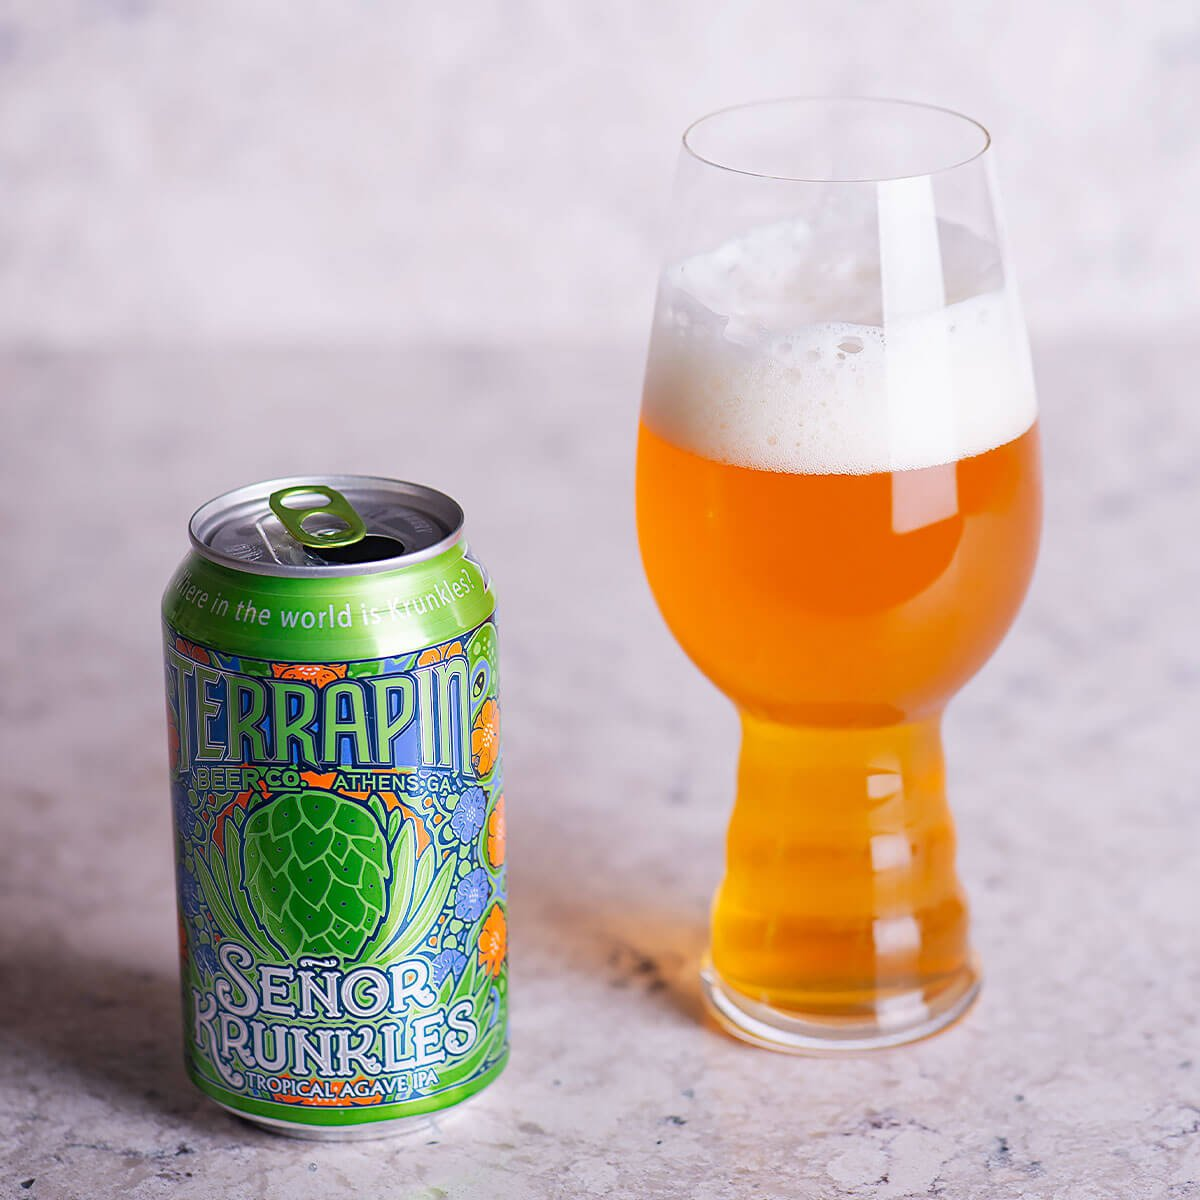 Señor Krunkles is an American IPA by Terrapin Beer Co. that blends spicy and floral hops with baked bread, tropical fruit, and pear.